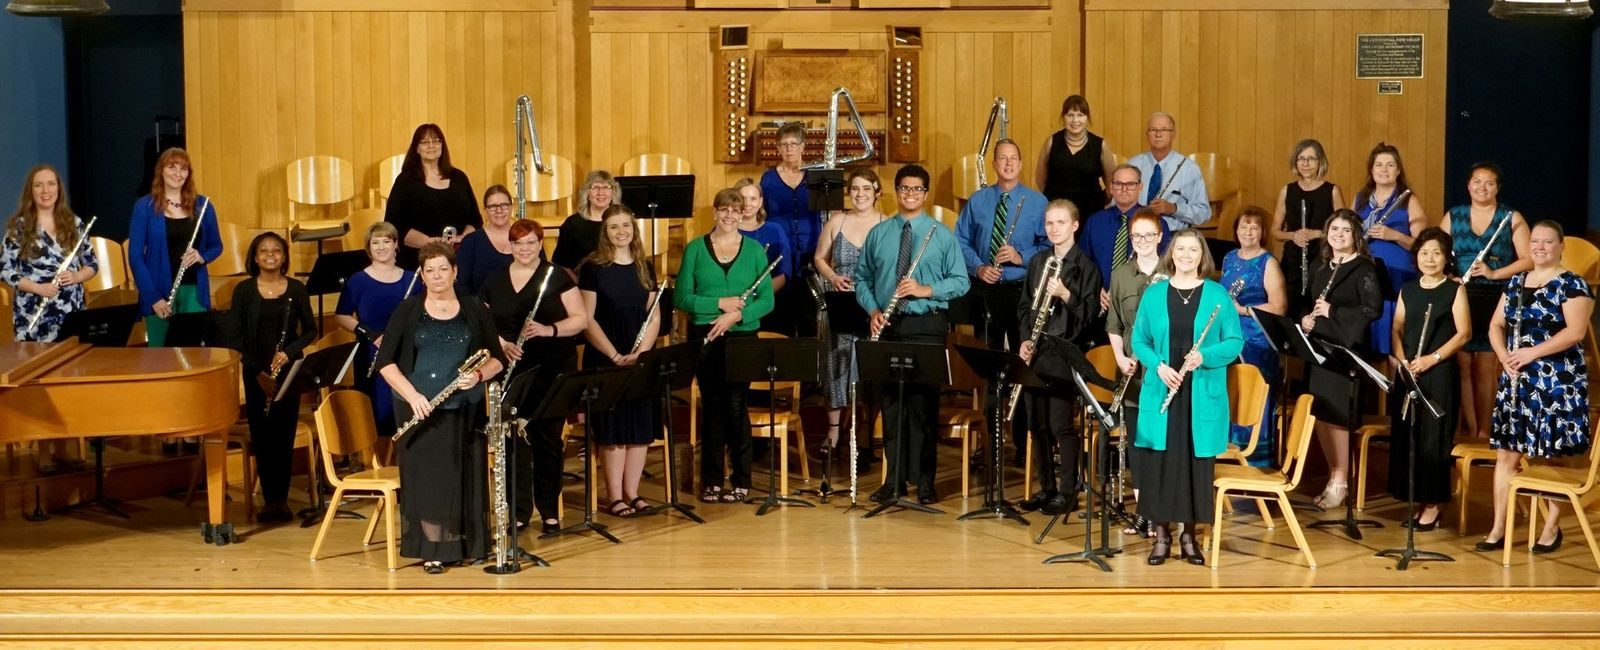 def community flute choir program image